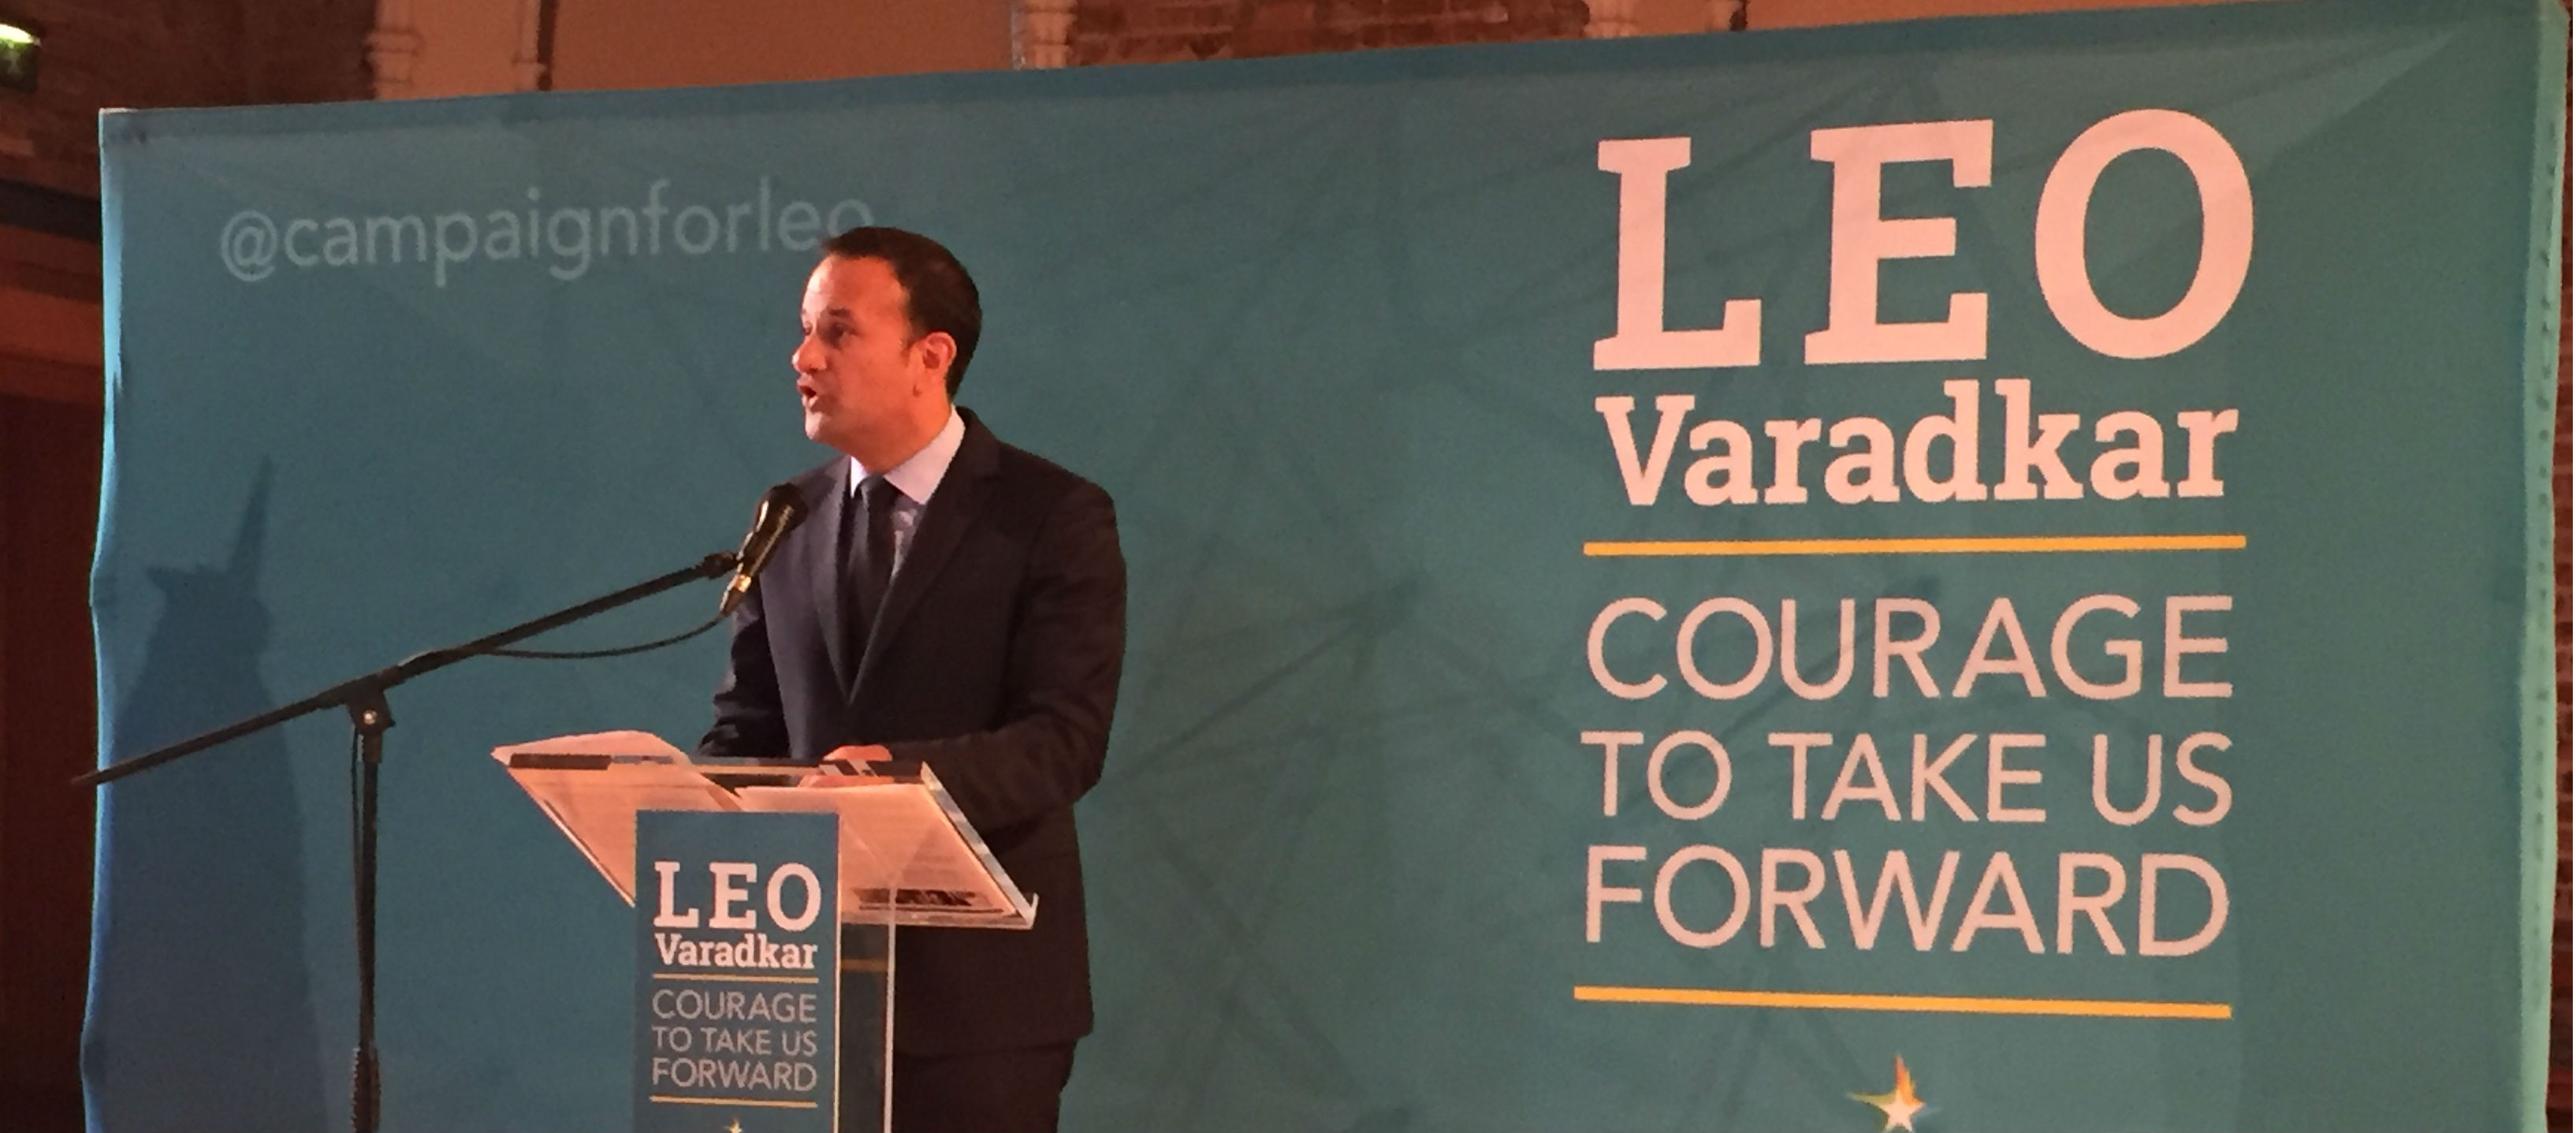 Leo Varadkar Reacts To Apple Tax Ruling